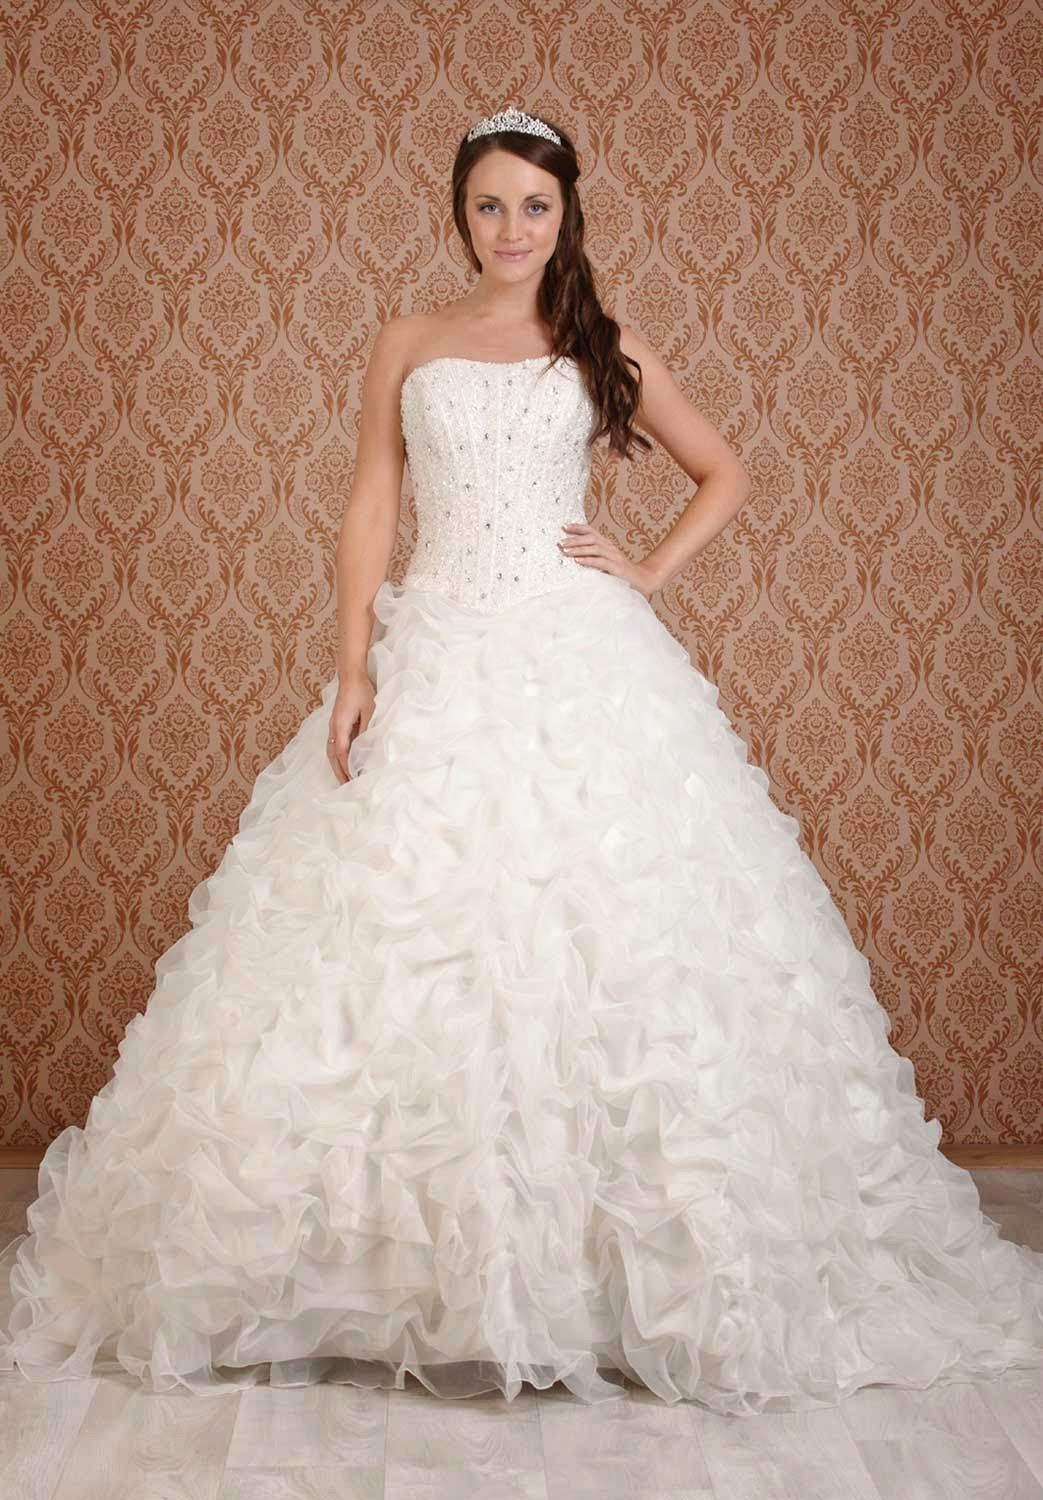 Vera Wang Disney Princess Wedding Dresses Concepts Ideas